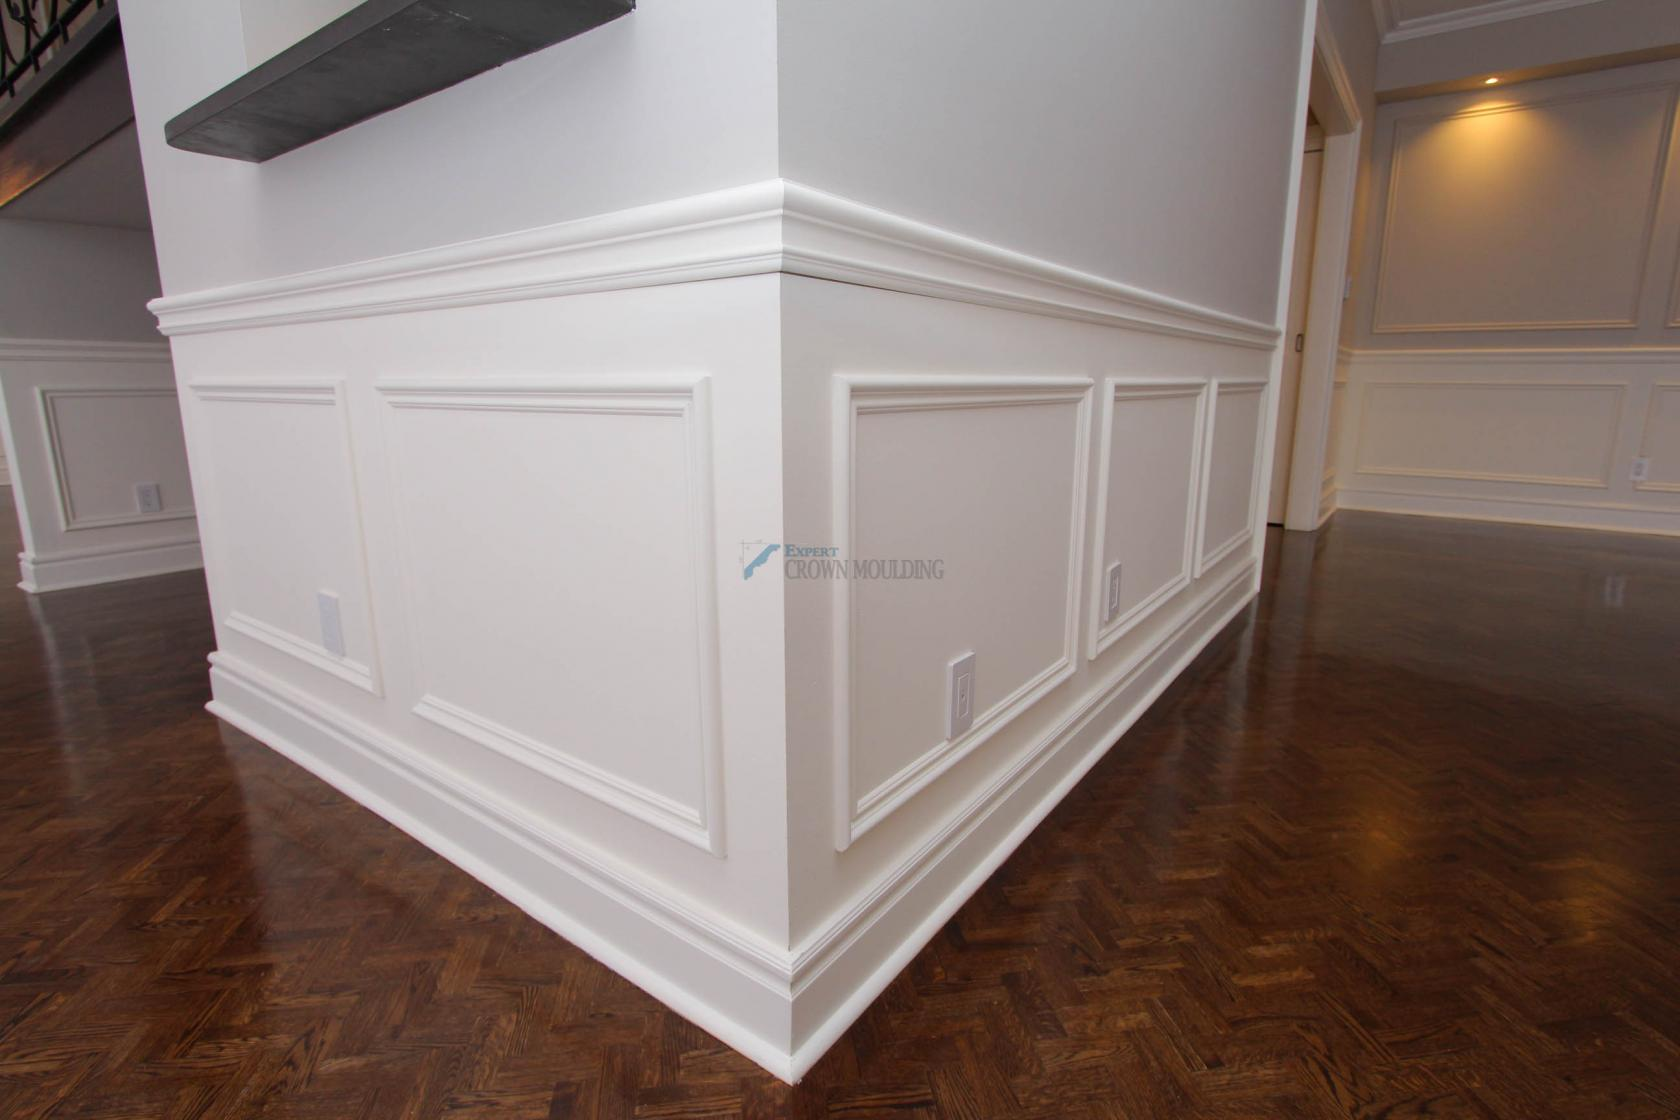 wainscoting panel installed